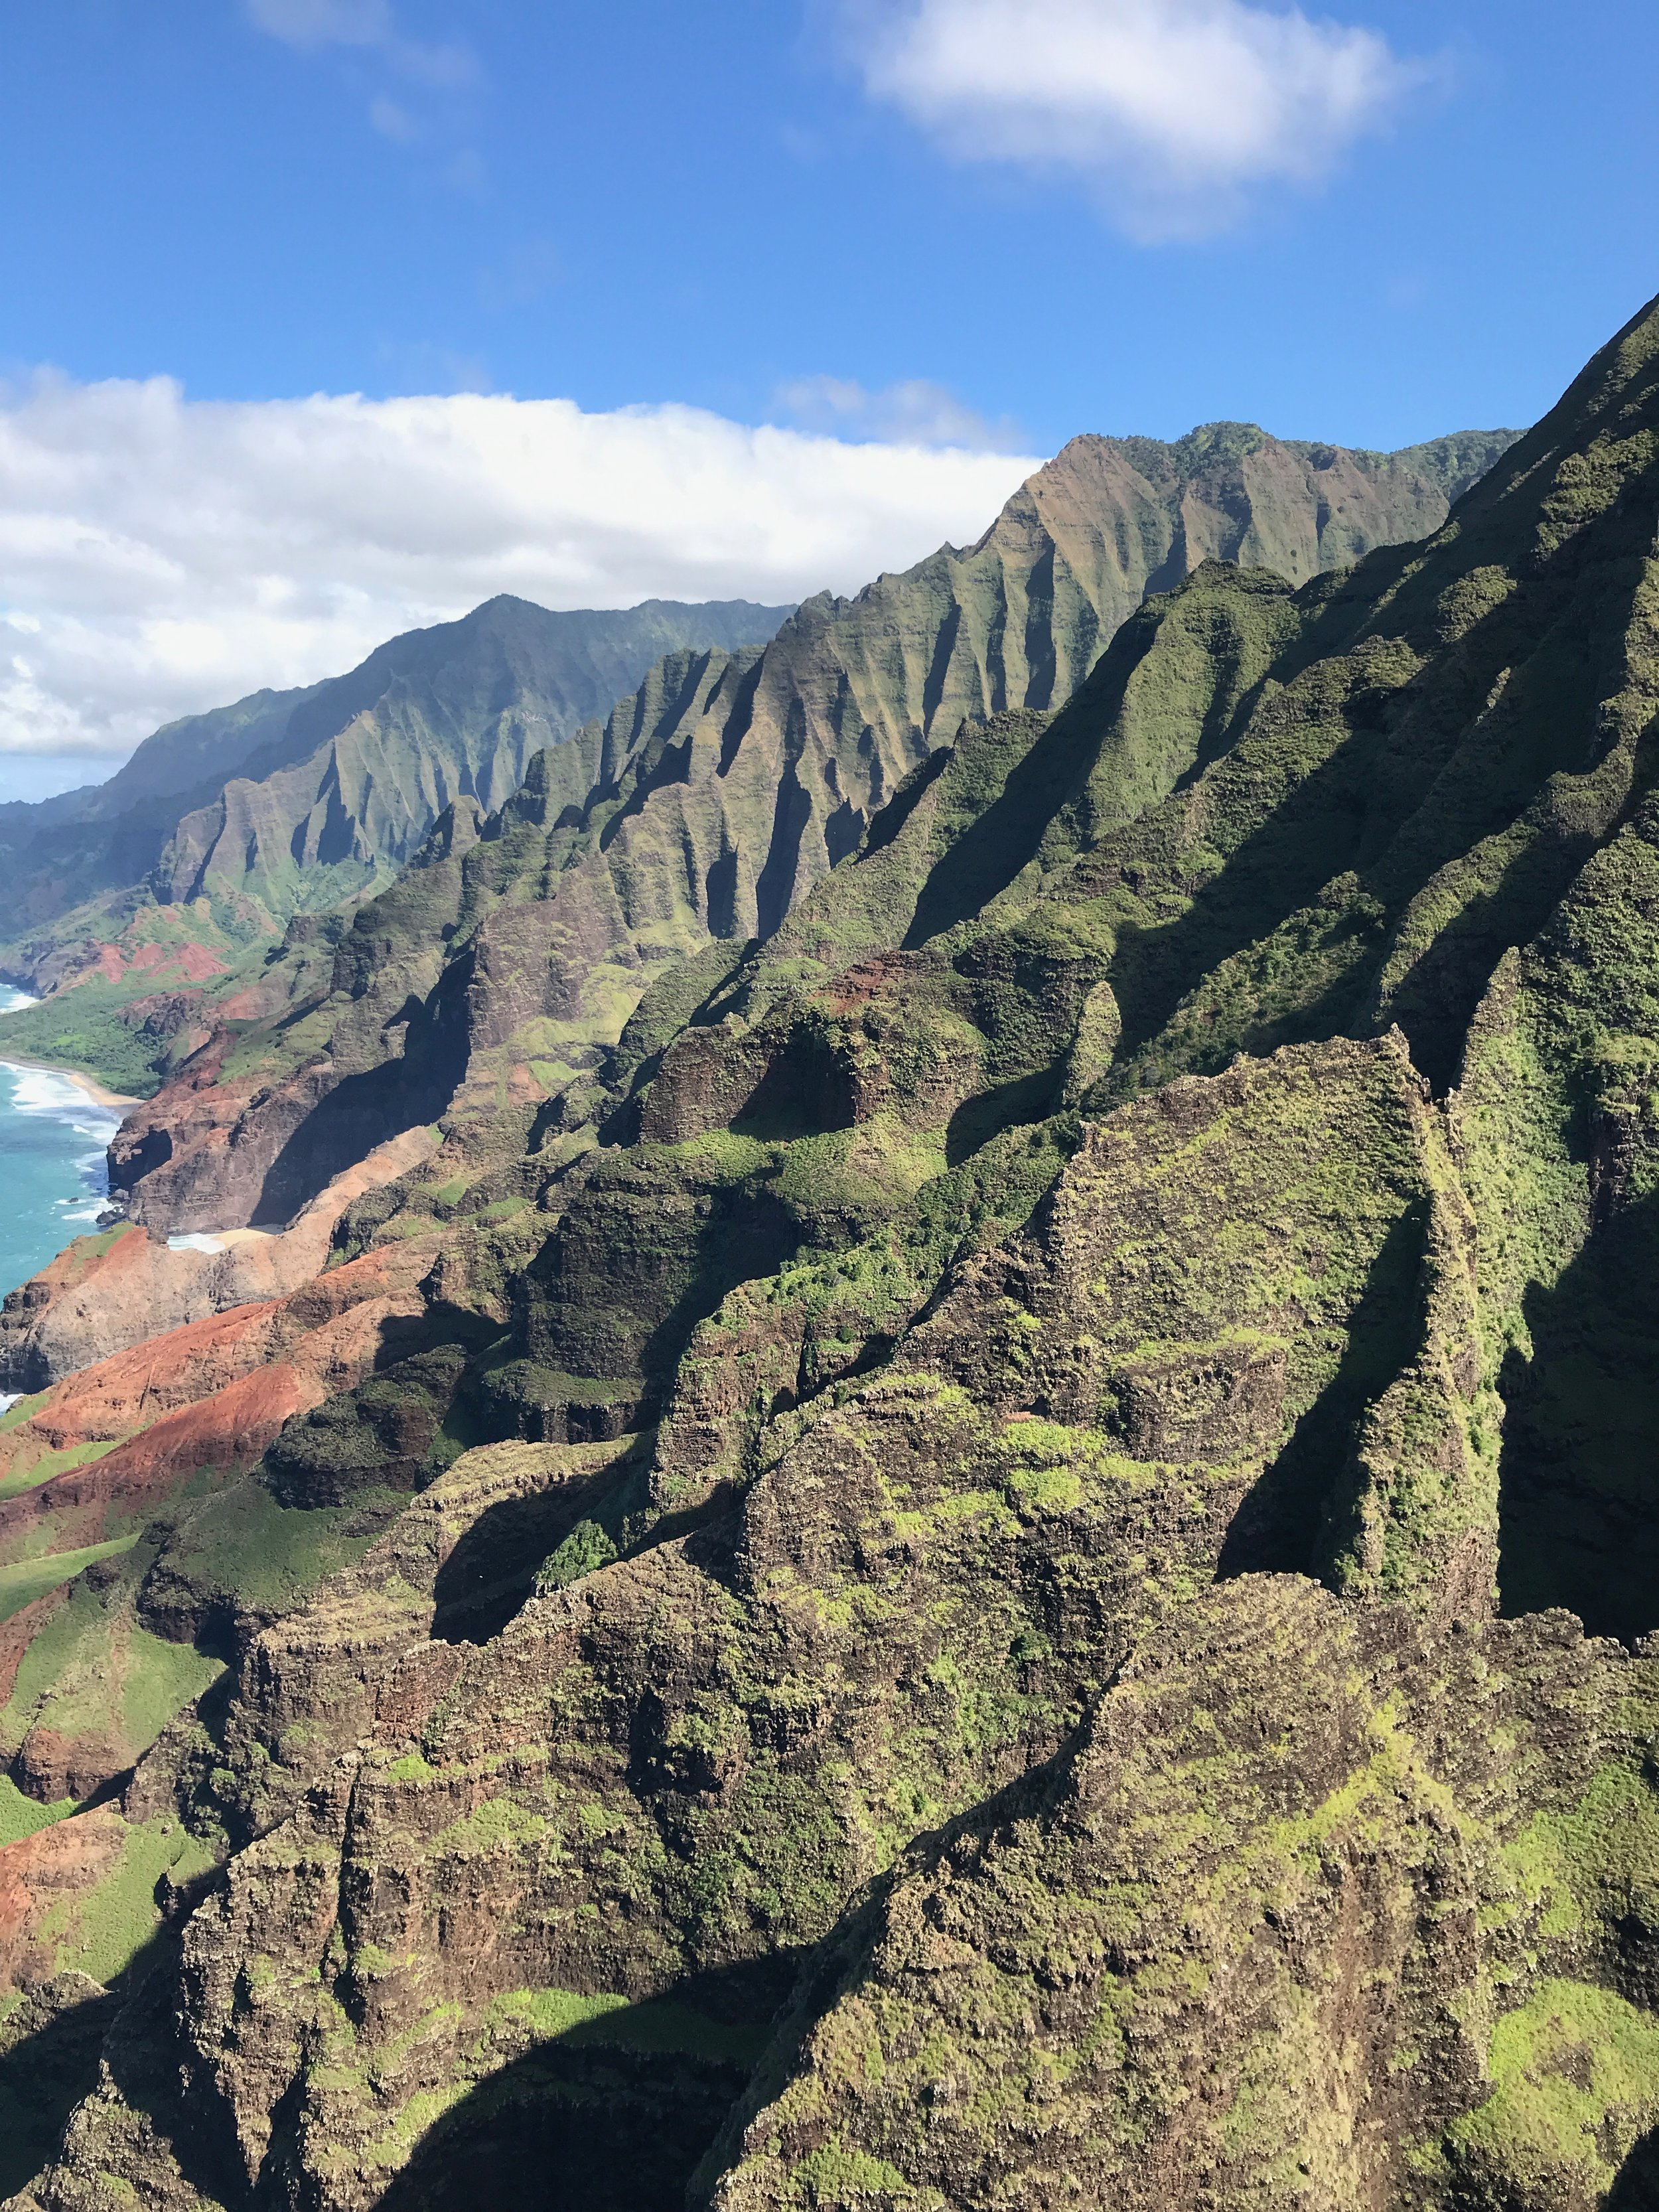 No filter needed here - the colors of the Na Pali are incredible.